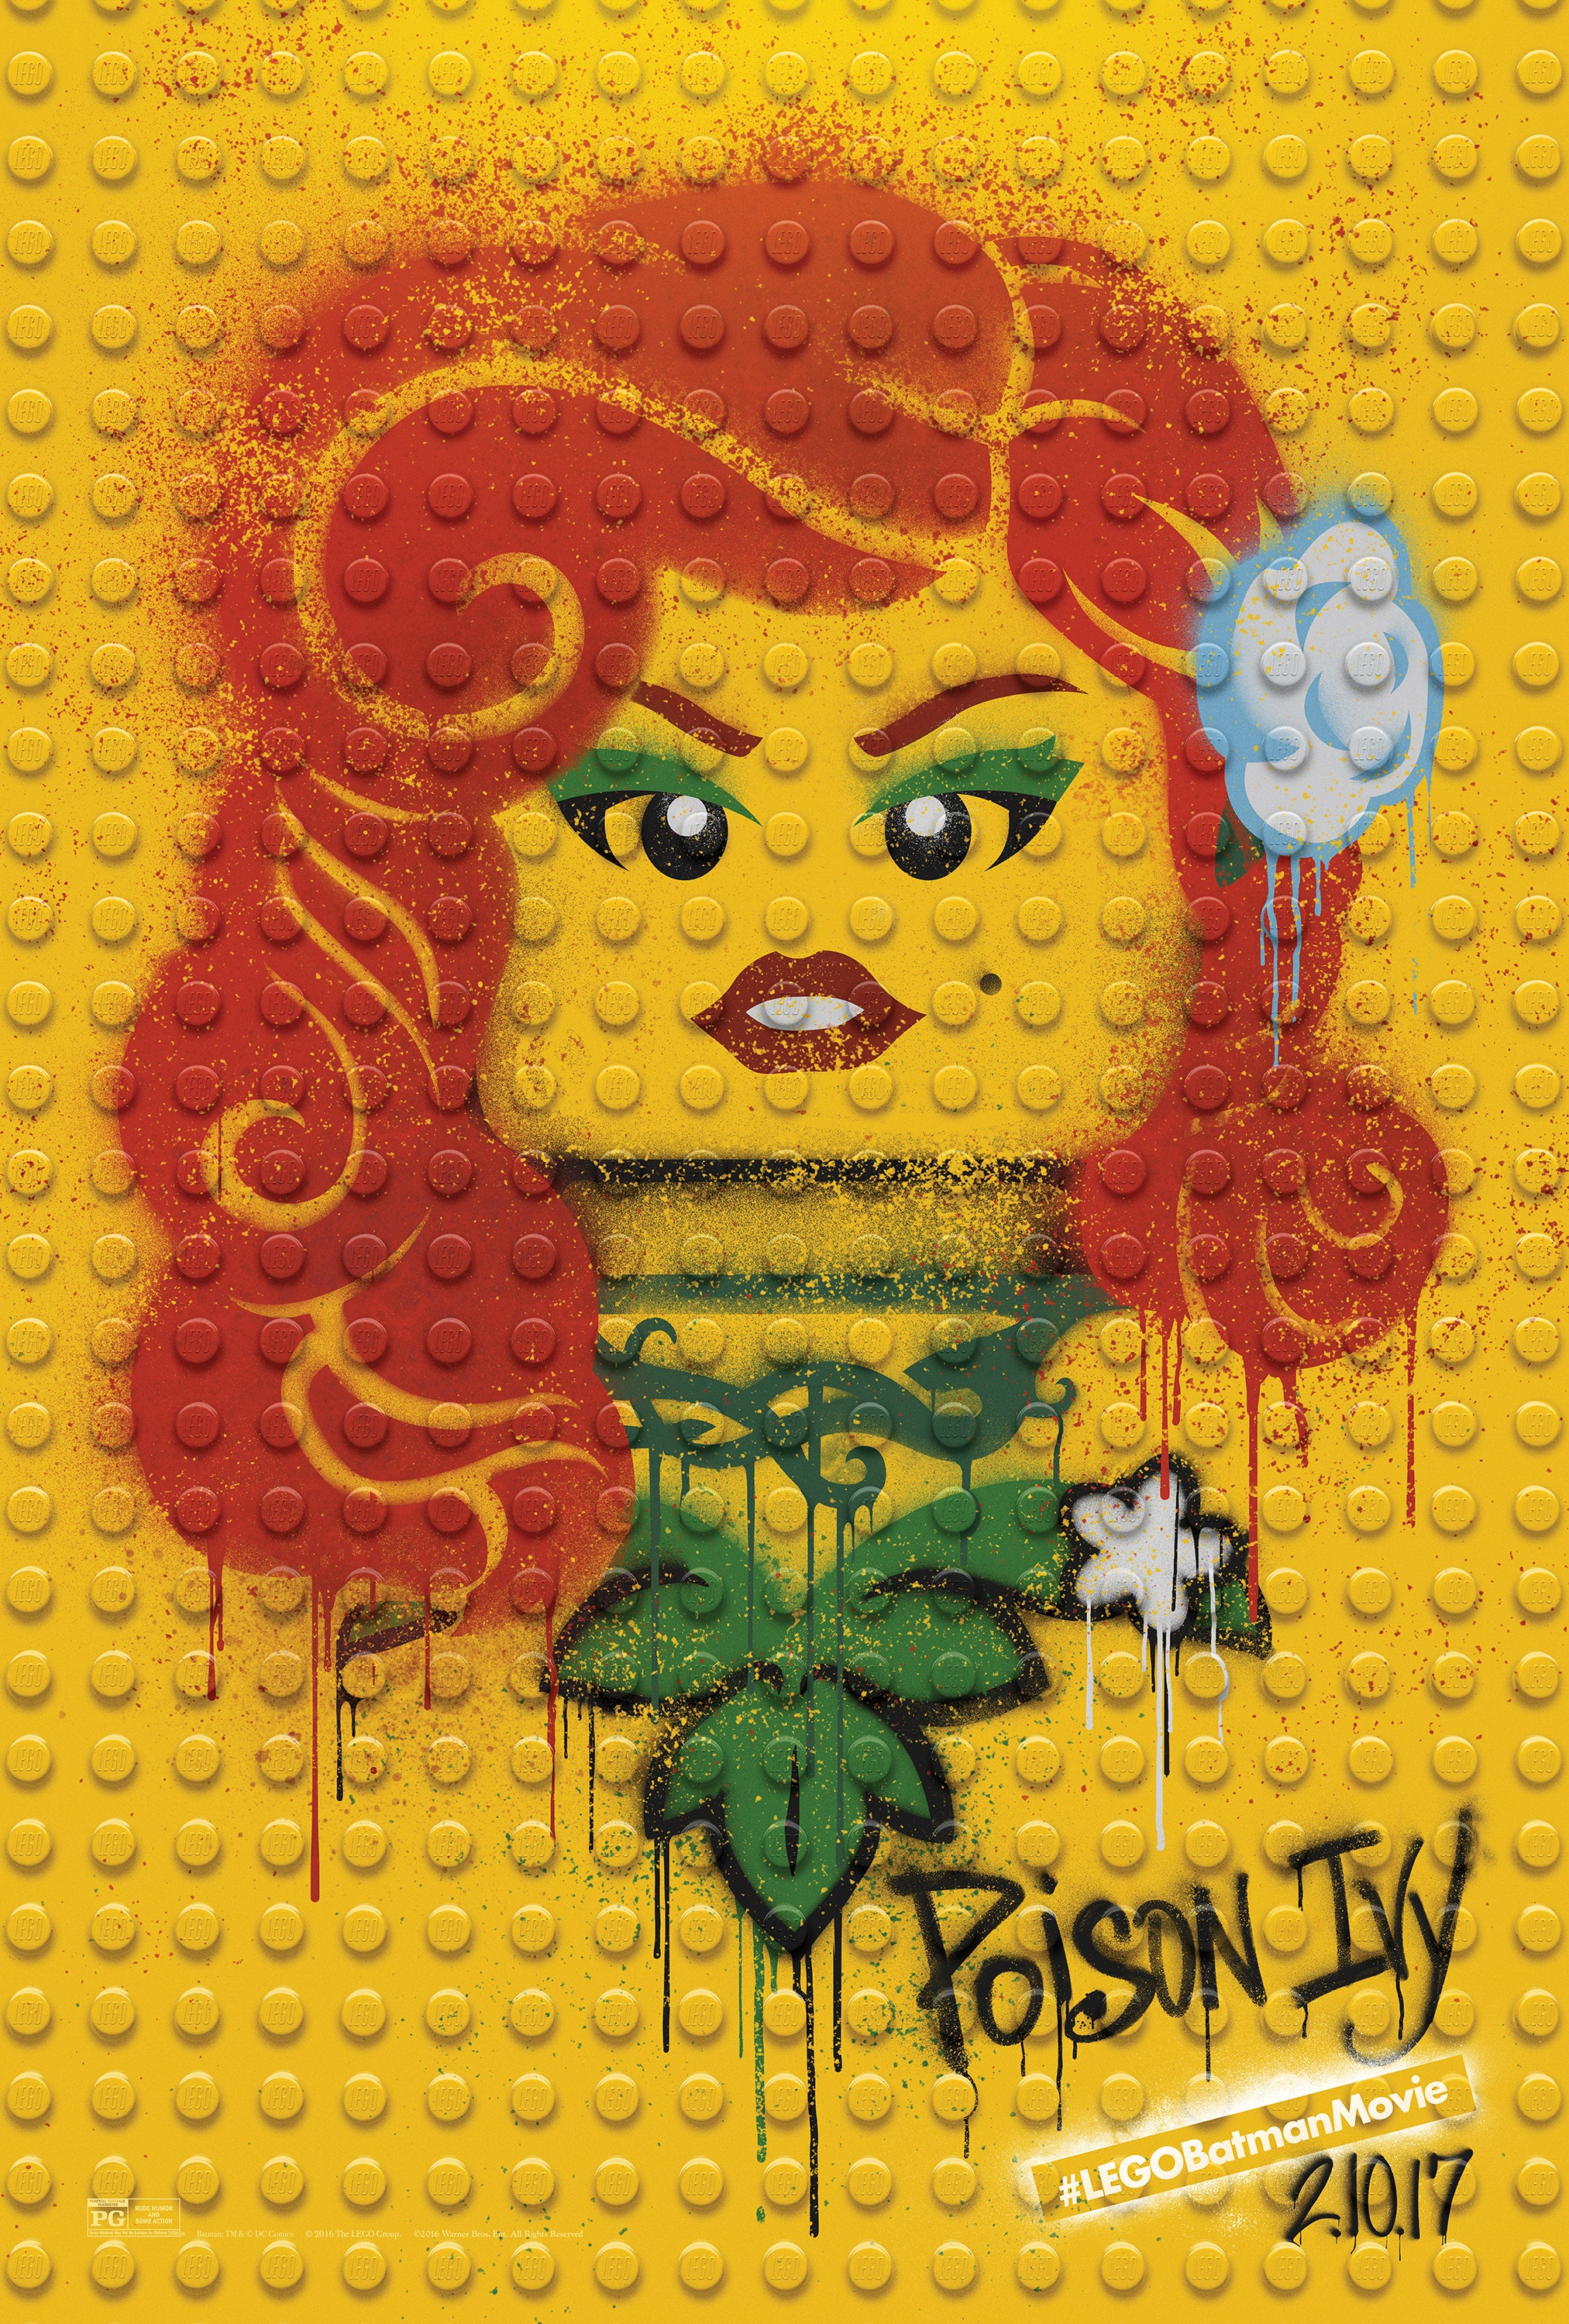 Image Media for The LEGO Batman Movie - Graffiti Wild Postings | Poison Ivy